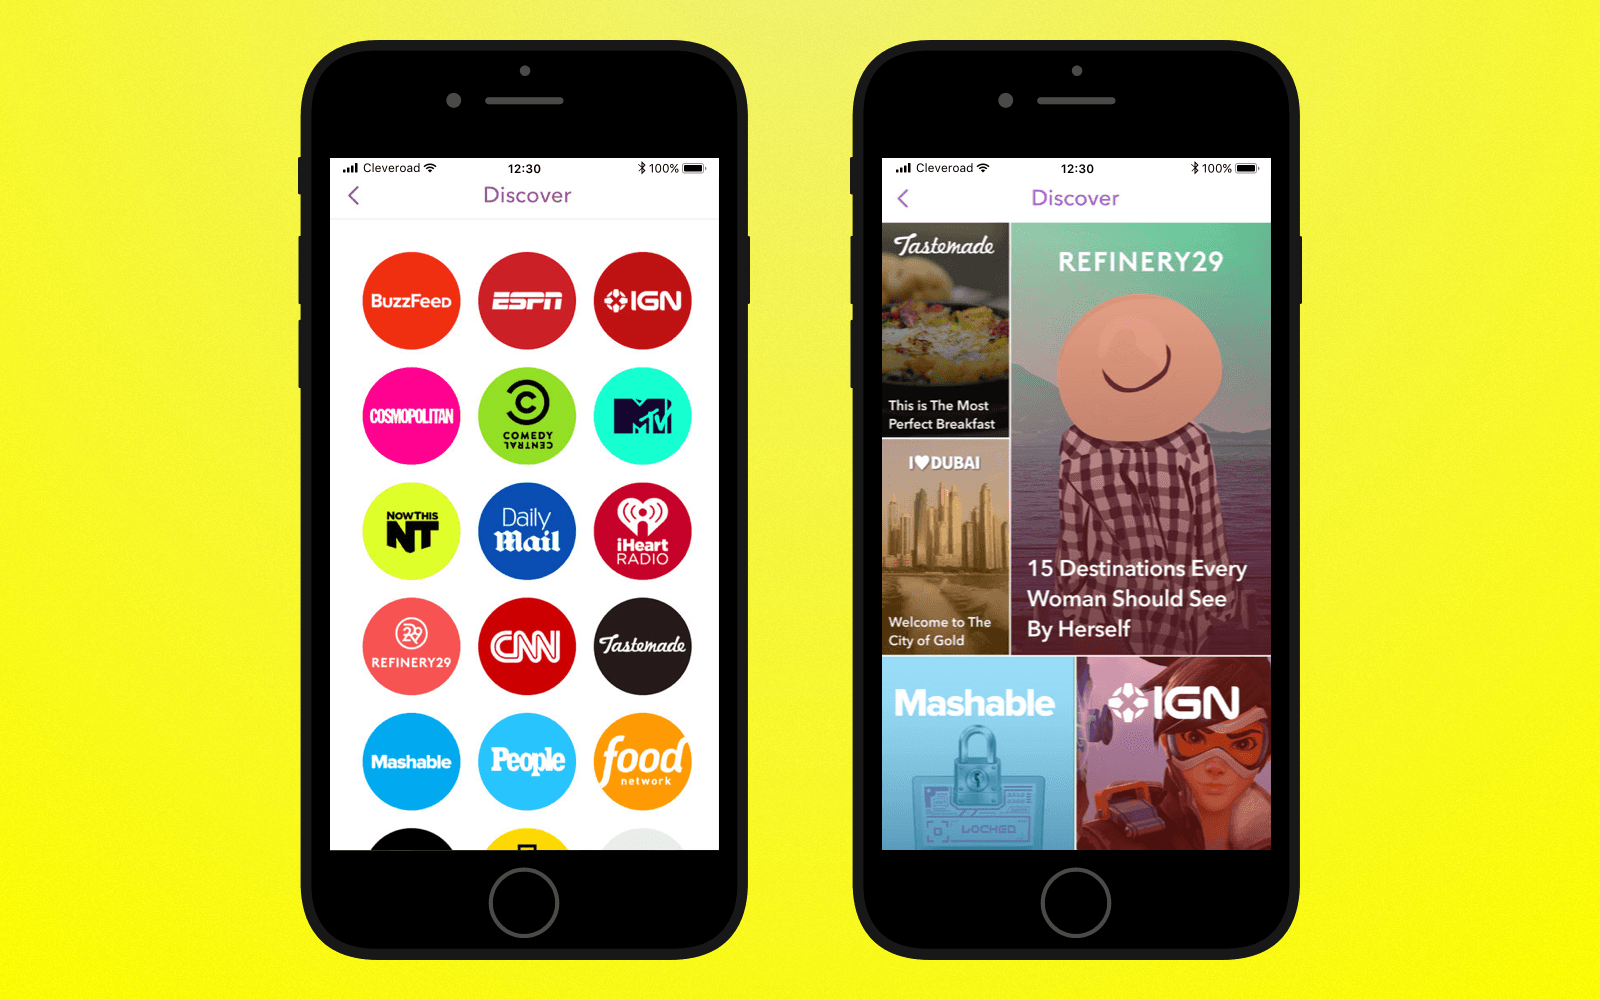 Add discover feature to create an app like Snapchat